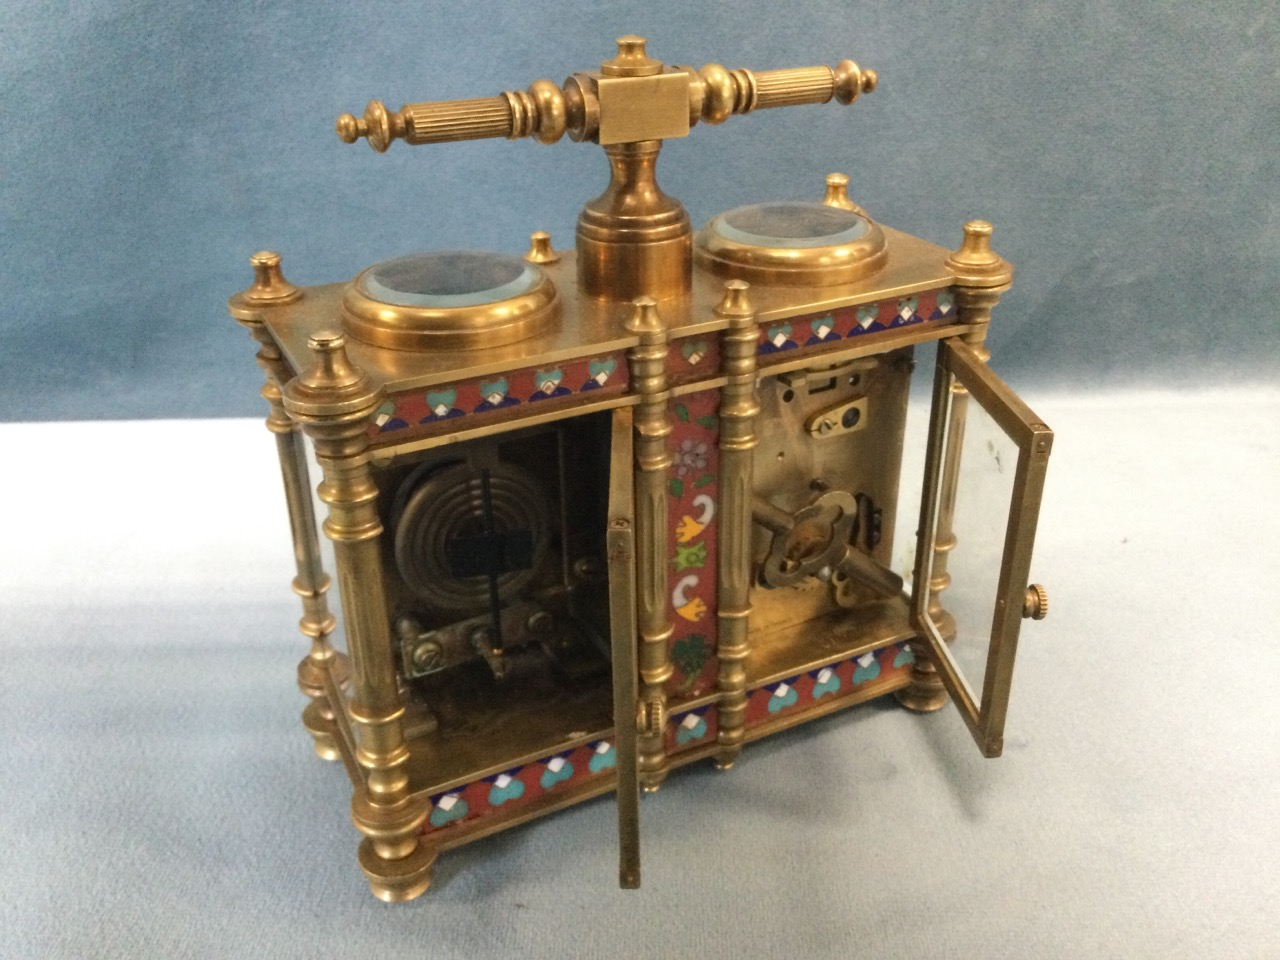 A French Edwardian enamelled brass desk-top clock barometer, the twin instruments with enamelled - Image 2 of 3